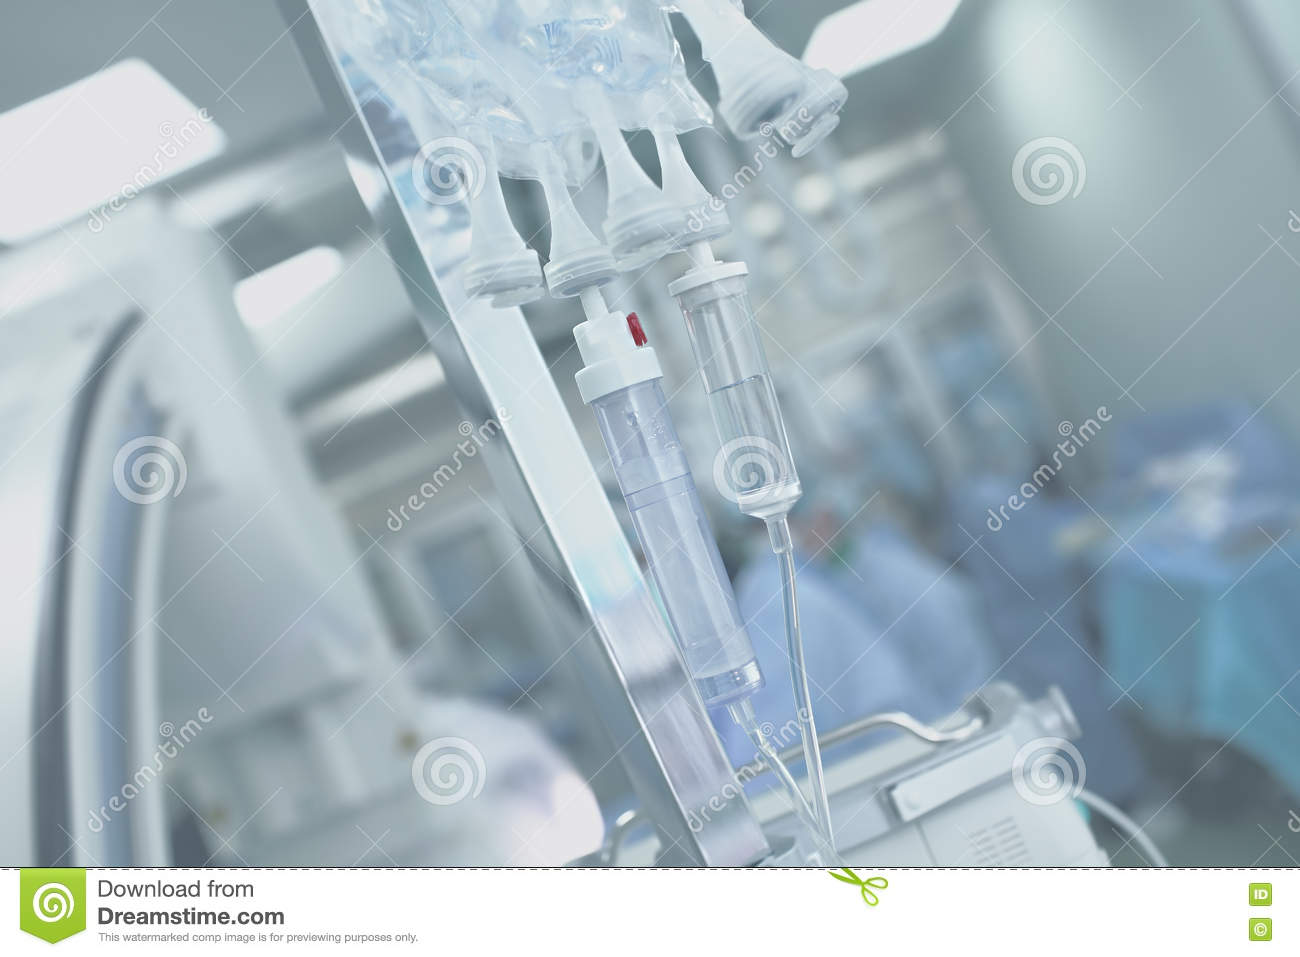 Medical IV drip systems on a background of the operating room